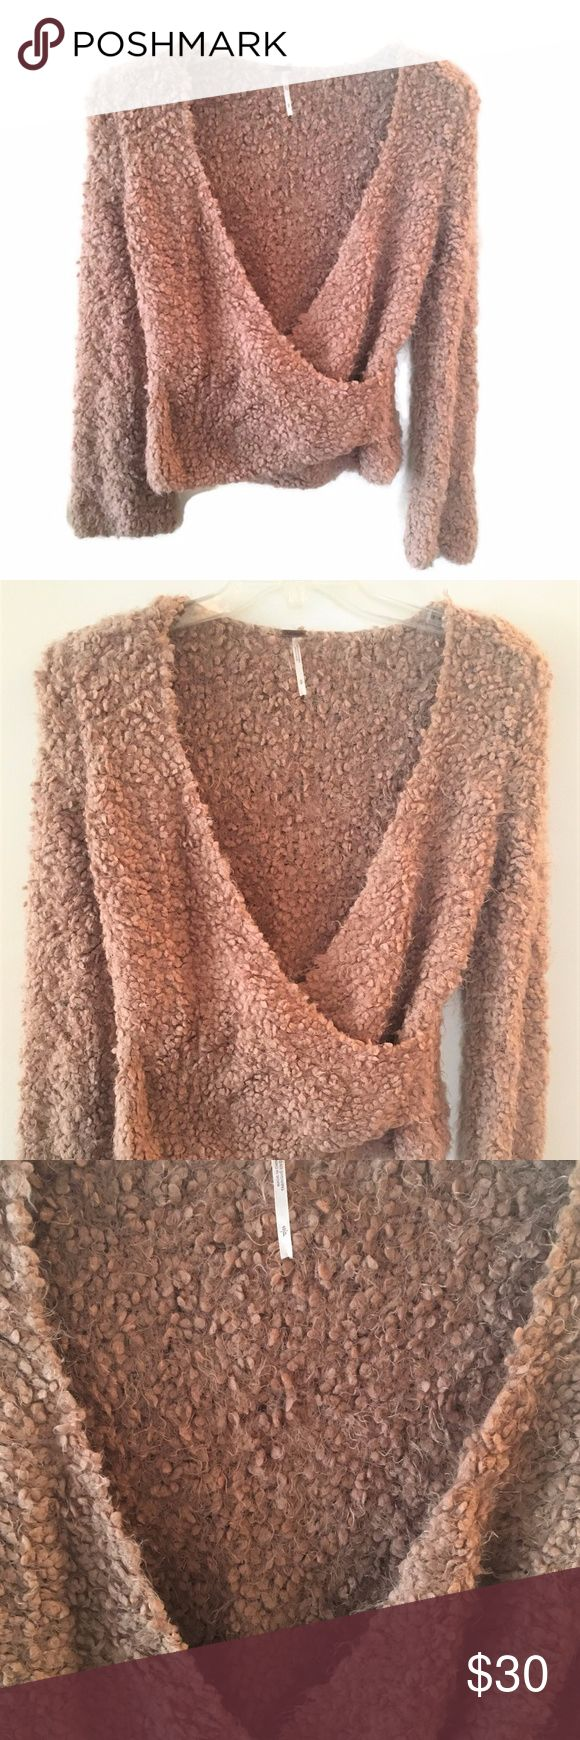 """Free People Cozy Sweater -- So Soft and Lovely TAN Free People Sweater  Soft and Cozy! Gorgeous Neutral Color Long Sleeves Looks great with Cami Size Small Petite Length: 21"""" Armpit to Armpit: 23""""  EXCELLENT Used Condition Comes from Non-Smoking Home Free People Sweaters"""